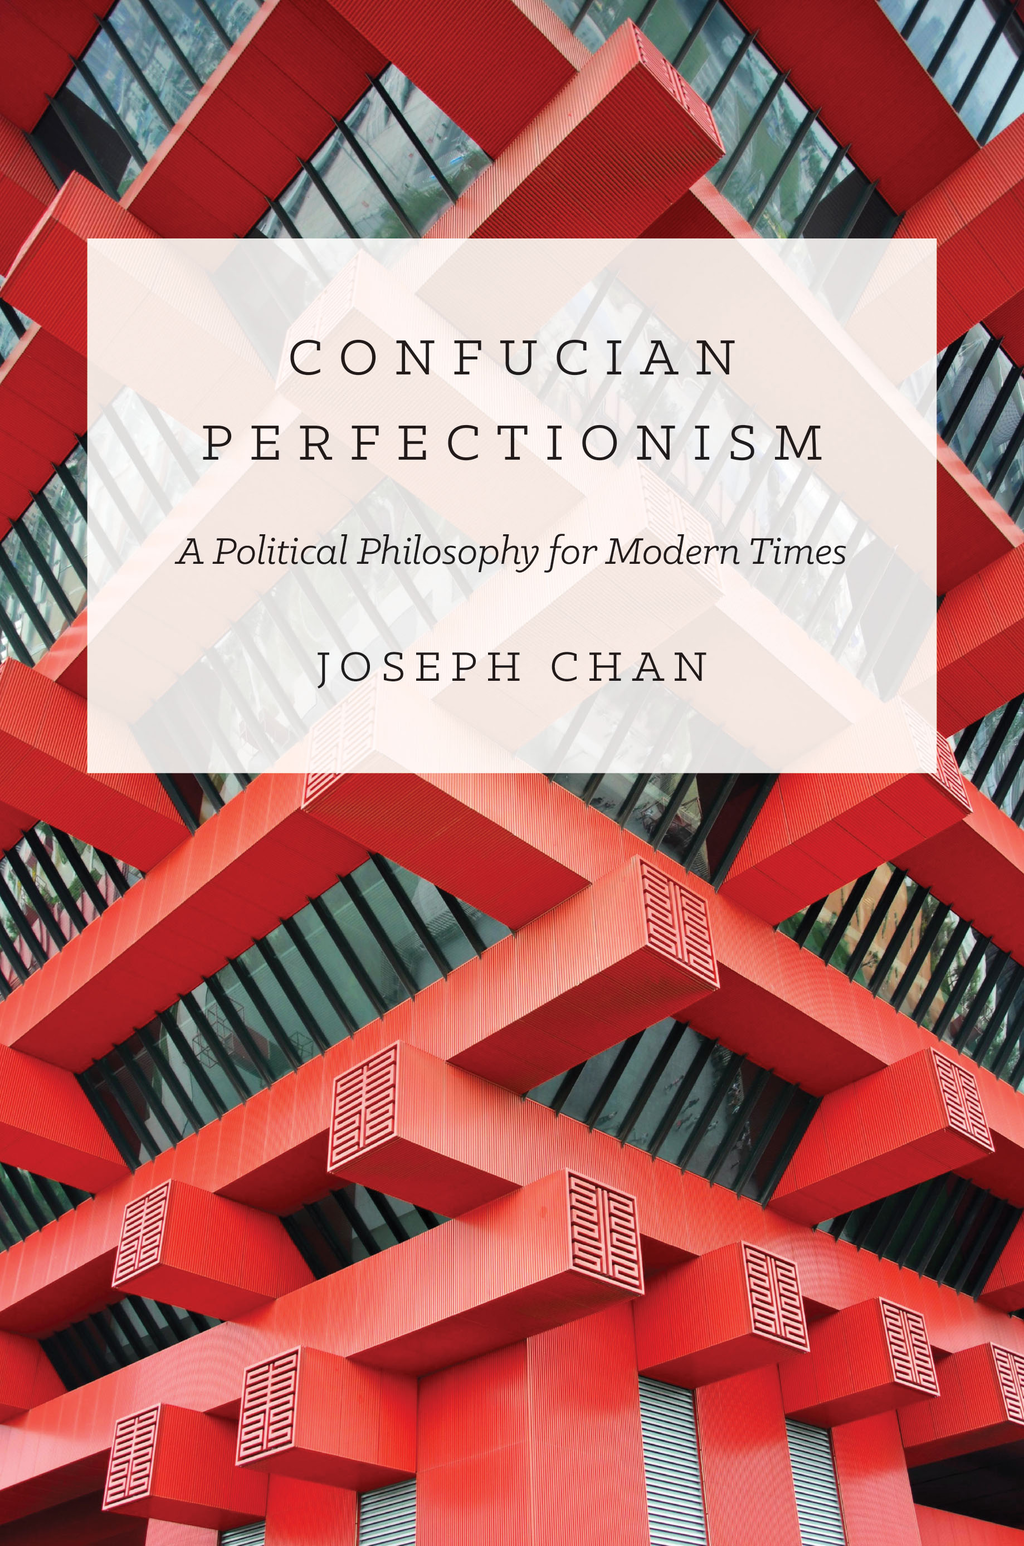 Confucian Perfectionism A Political Philosophy for Modern Times